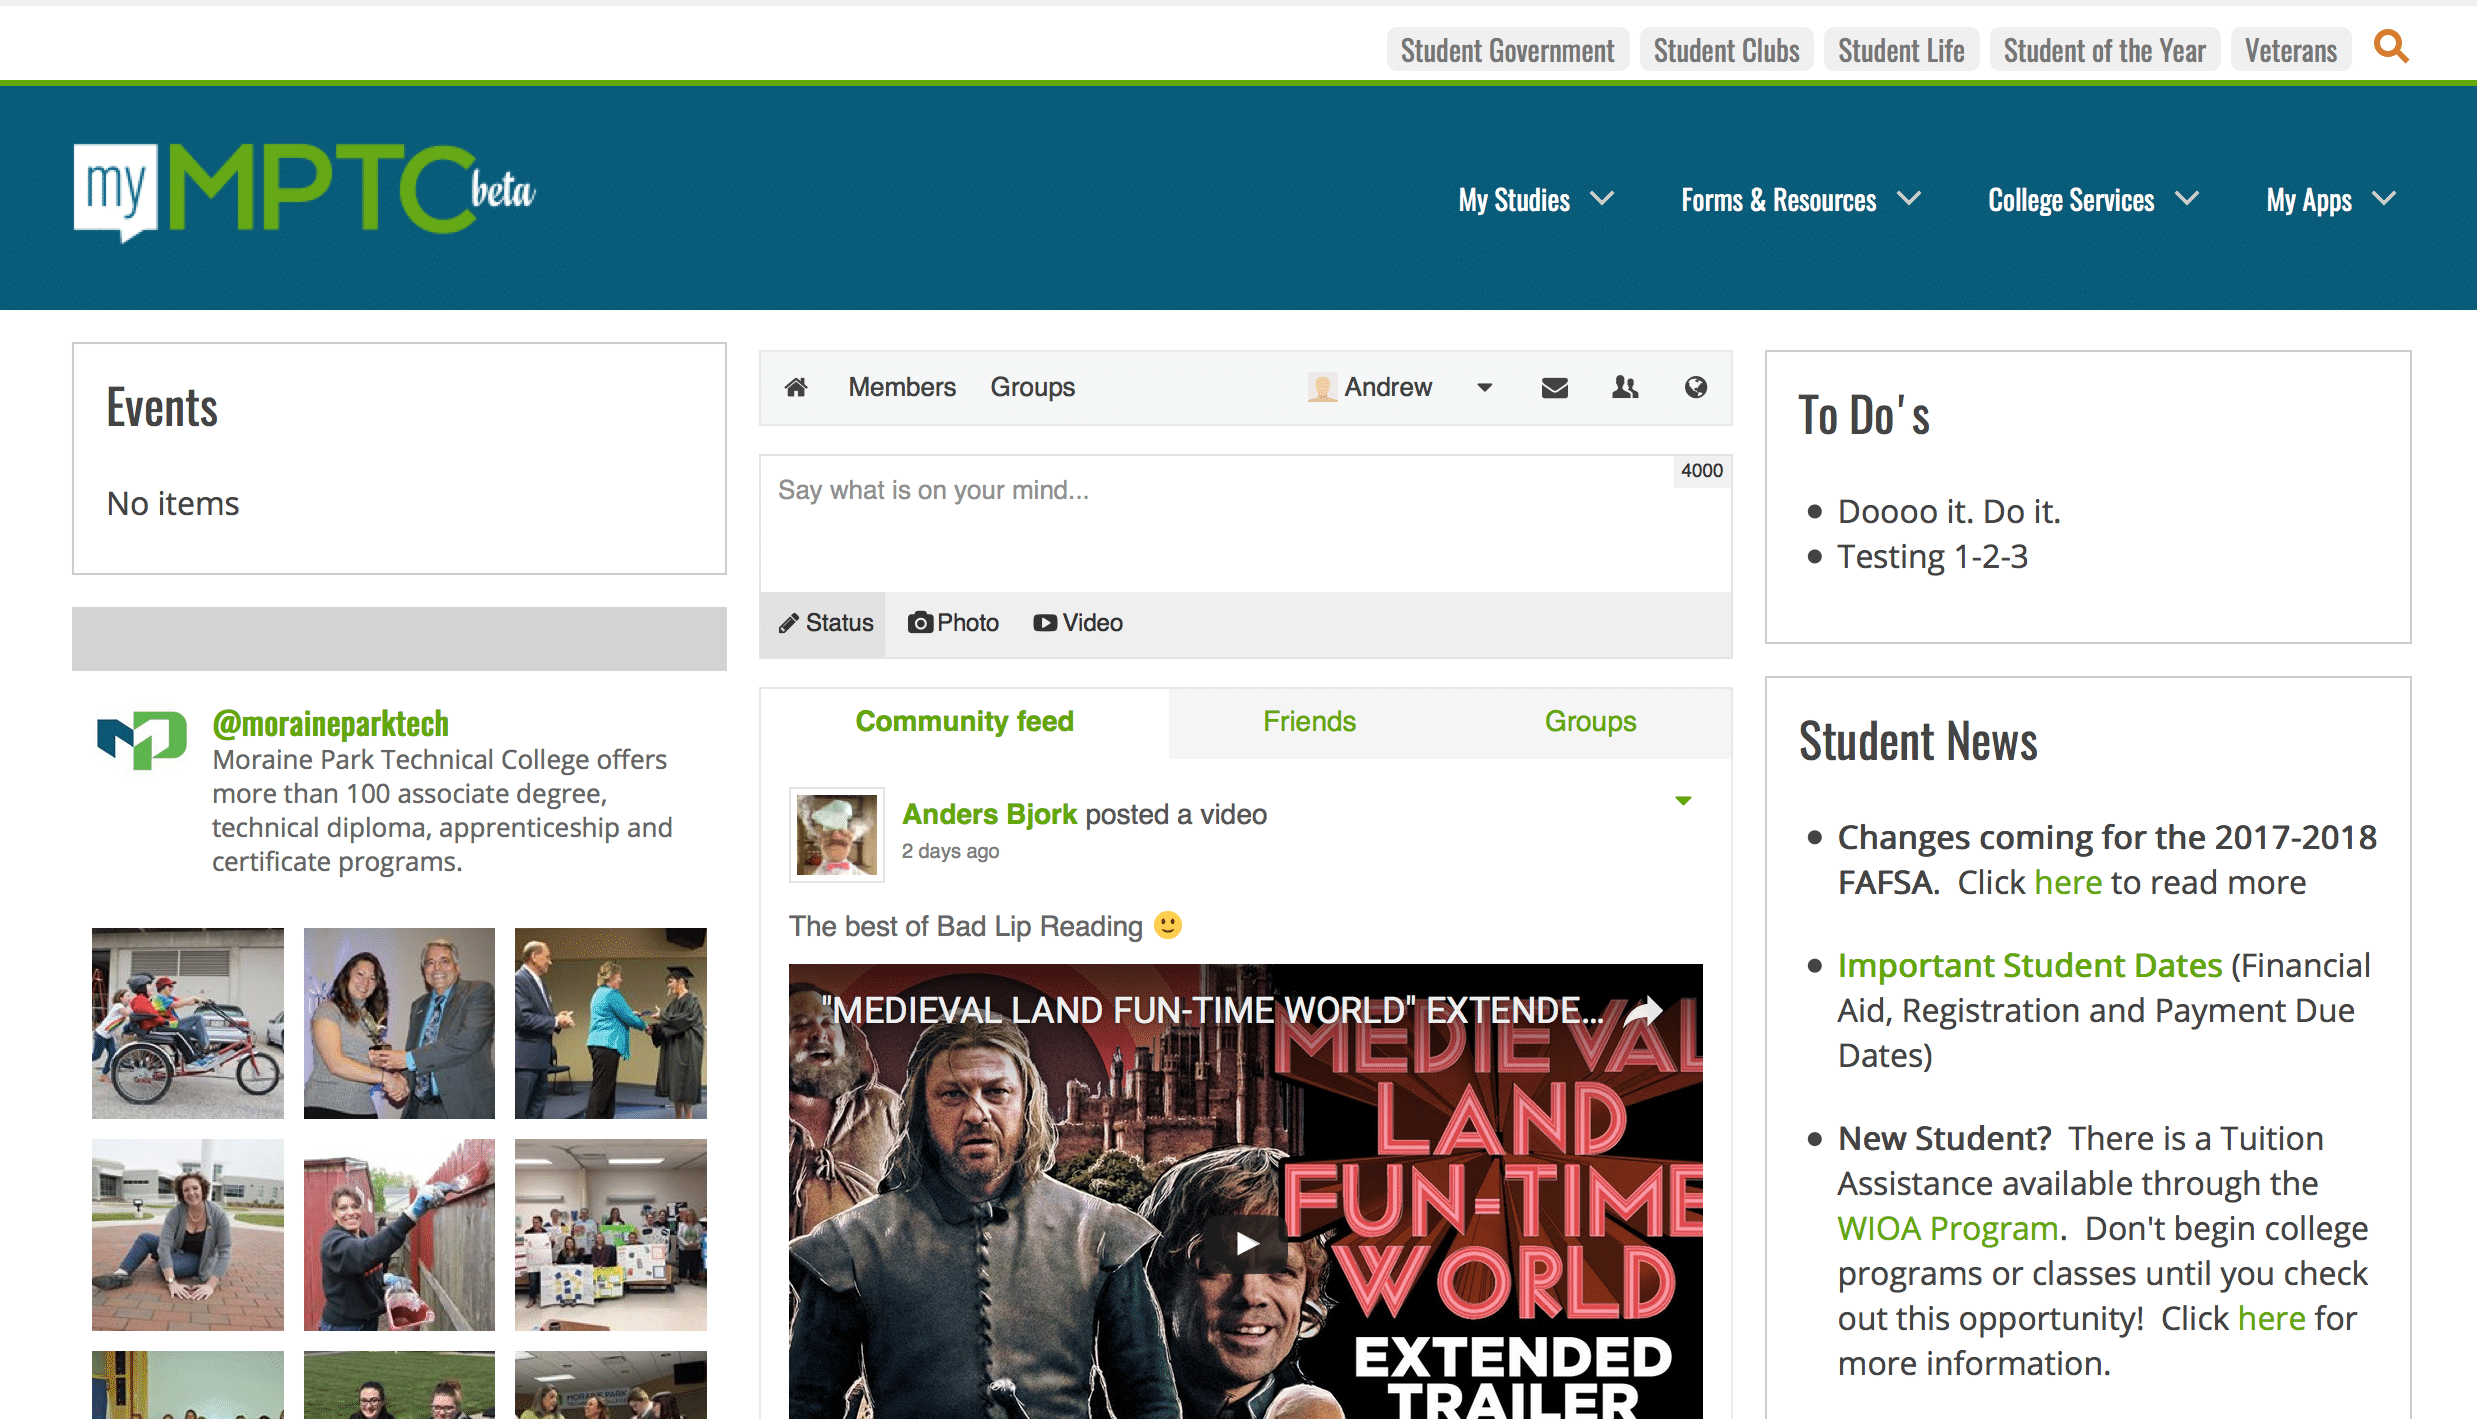 Screenshot showing features of myMPTC student portal